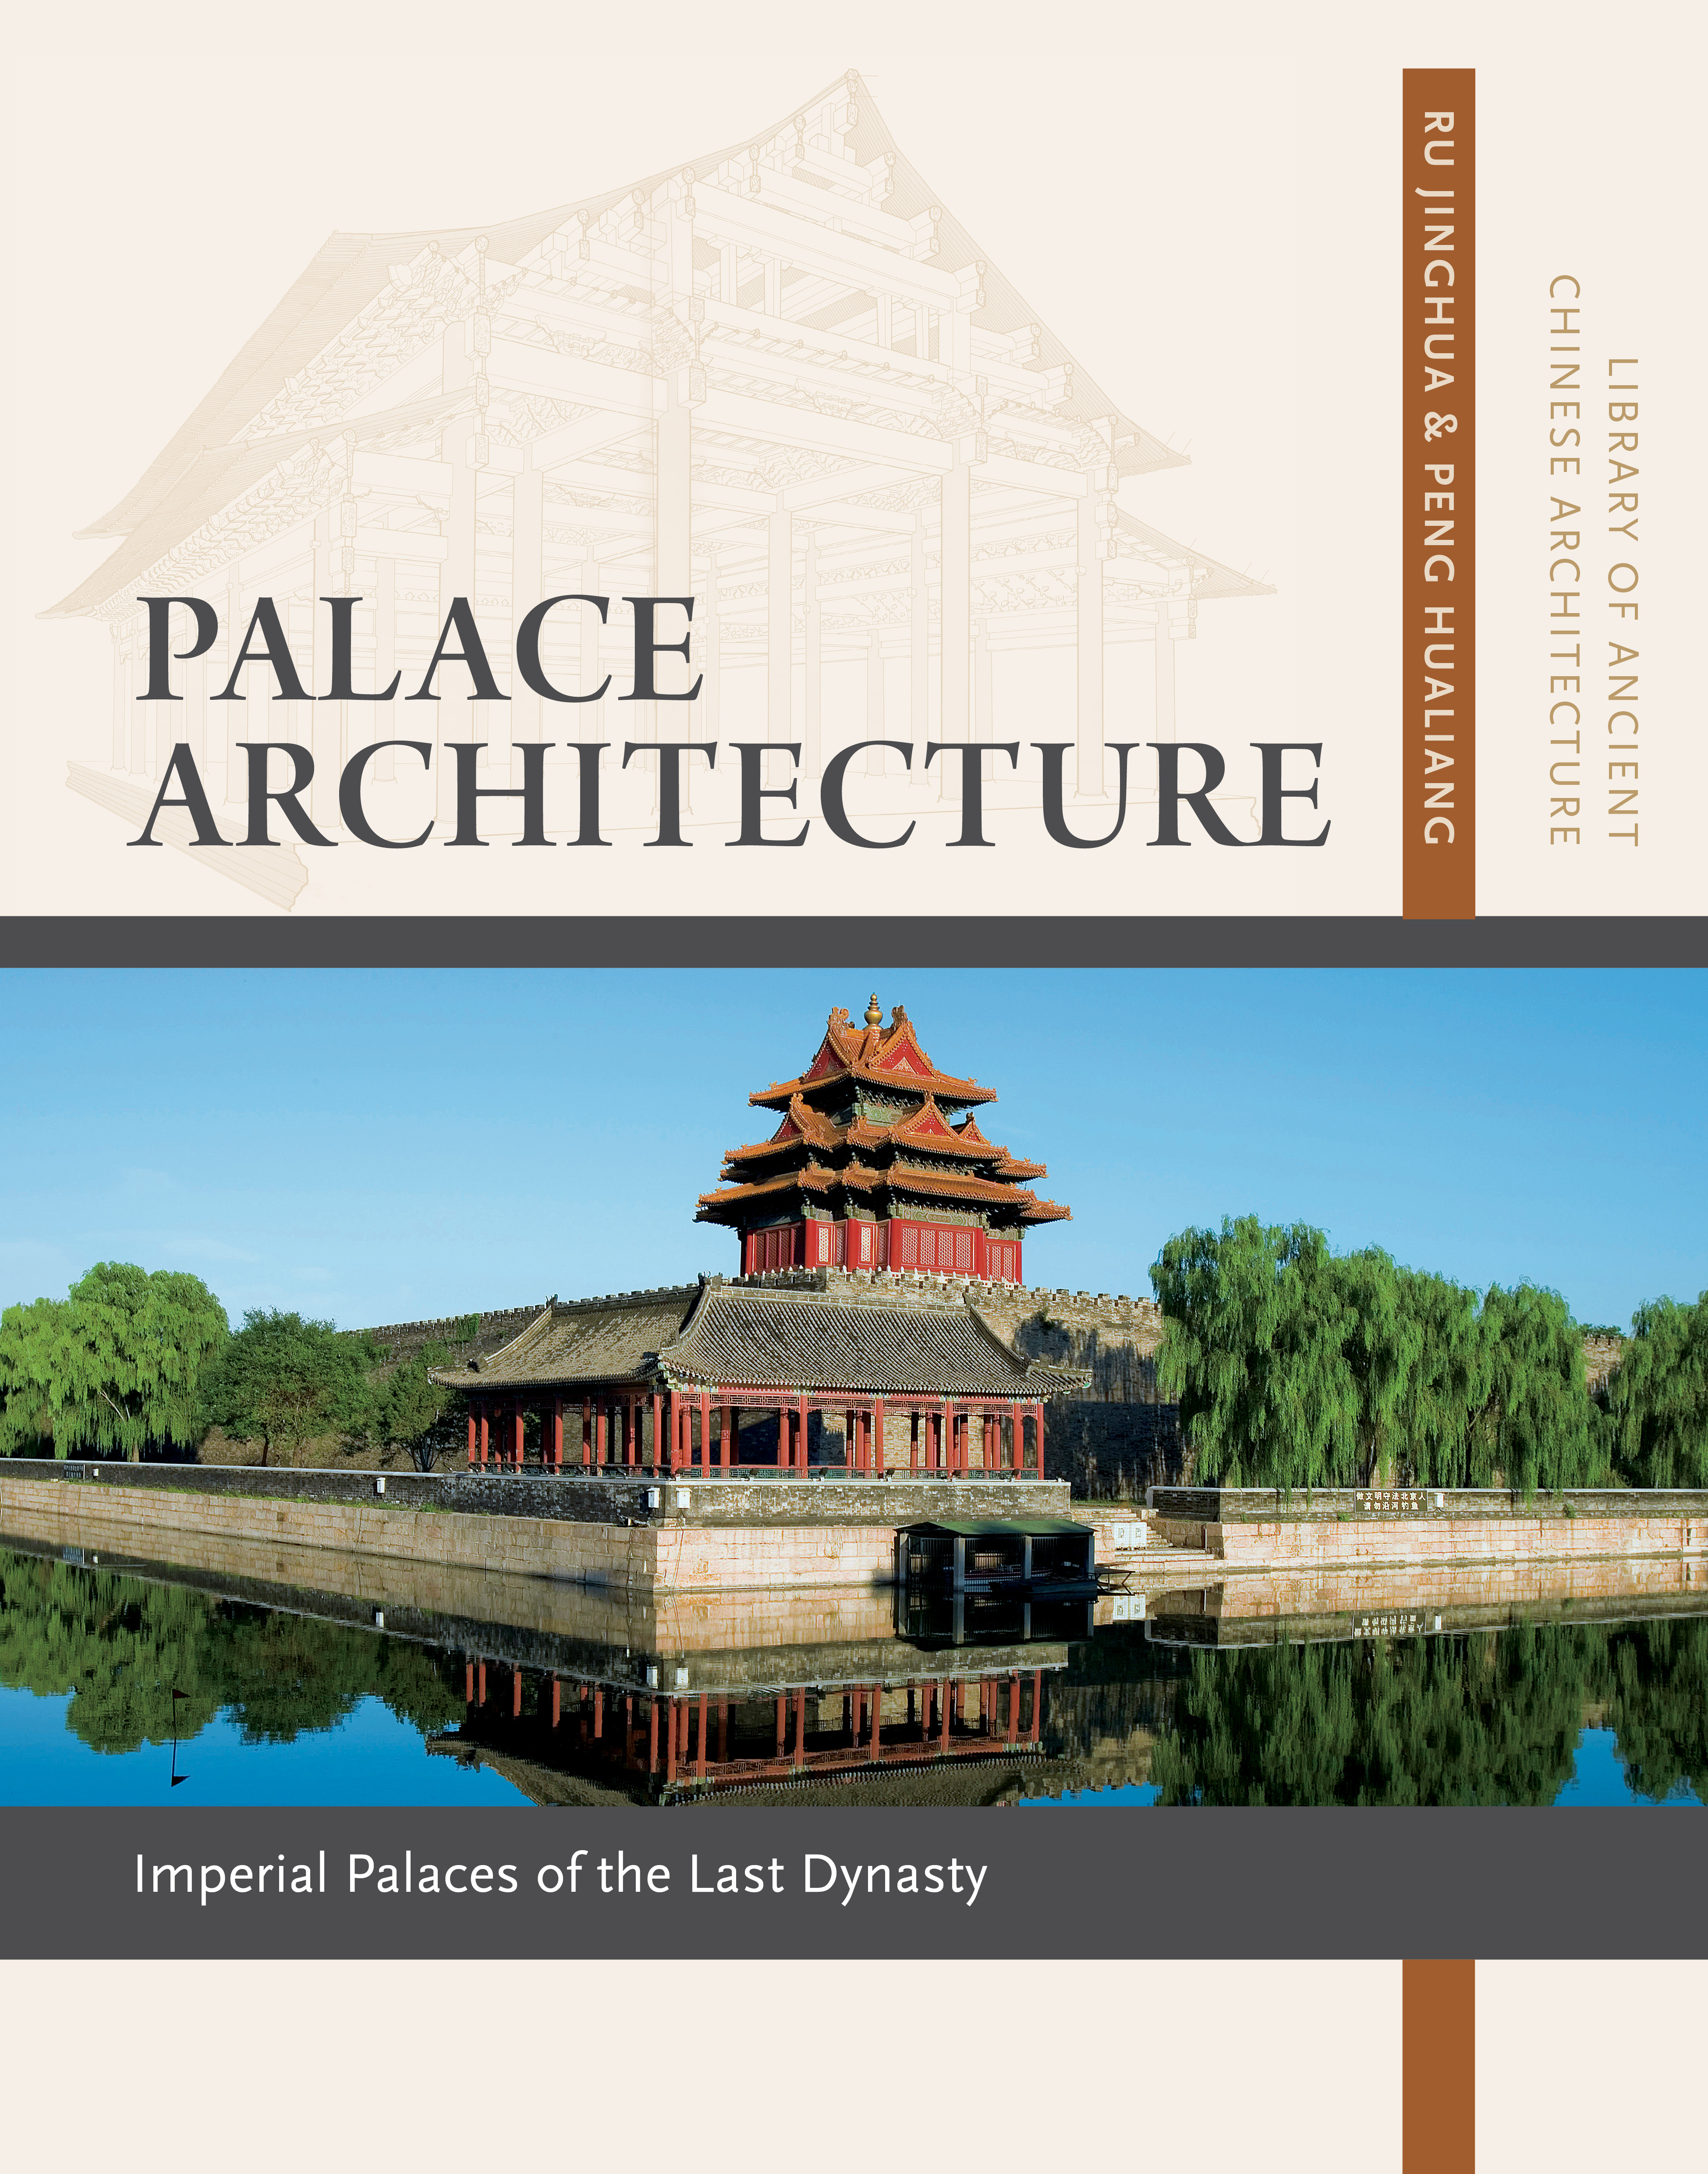 Palace Architecture: Imperial Palaces of the Last Dynasty